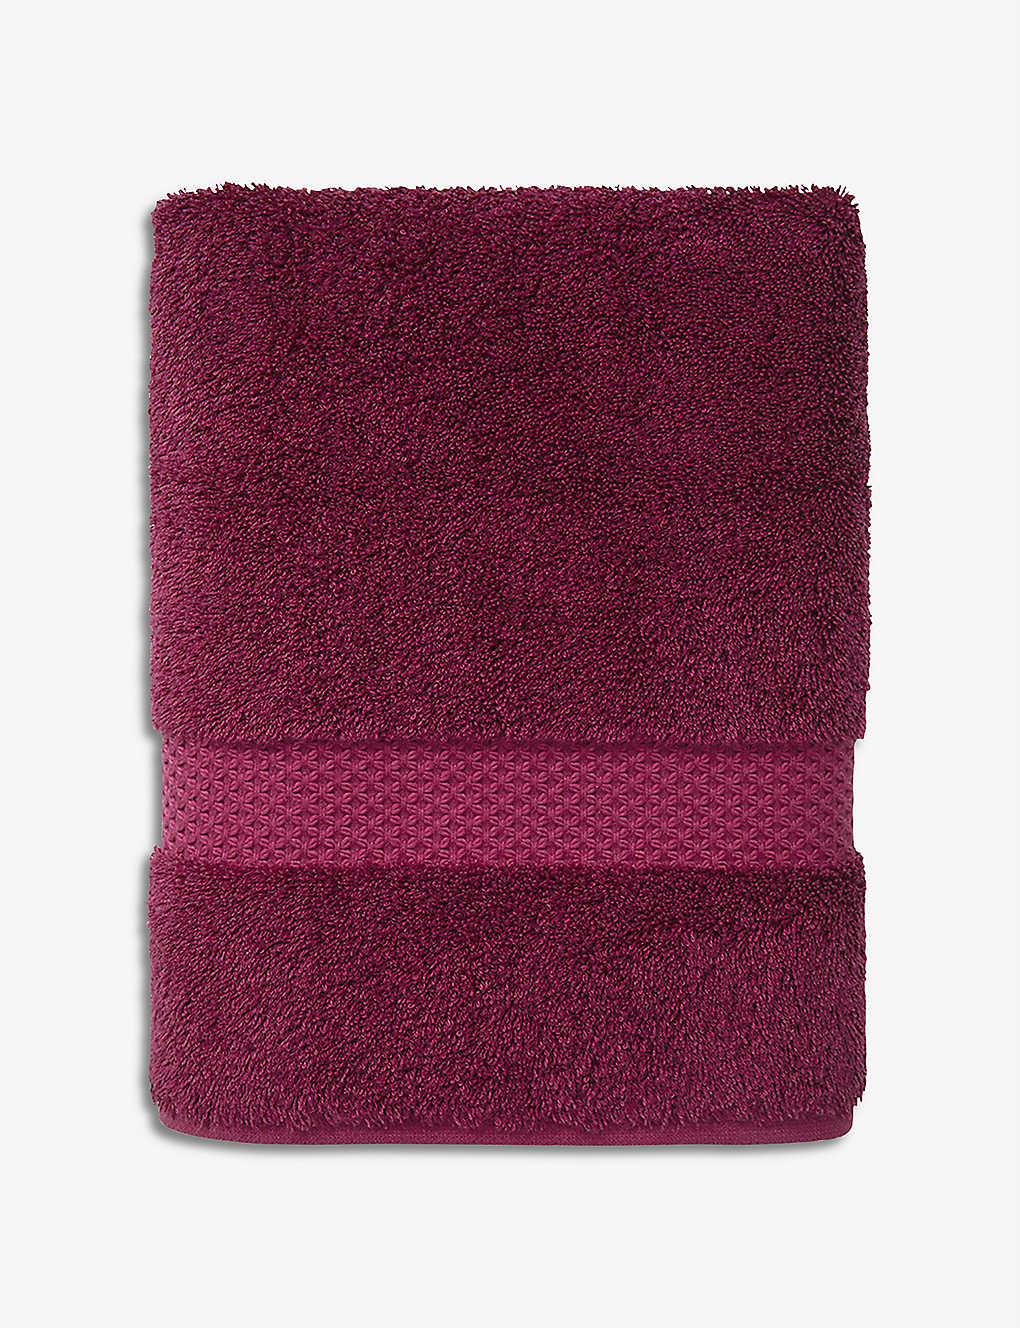 YVES DELORME: Etoile cotton and modal-blend bath towel 70cm x 140cm